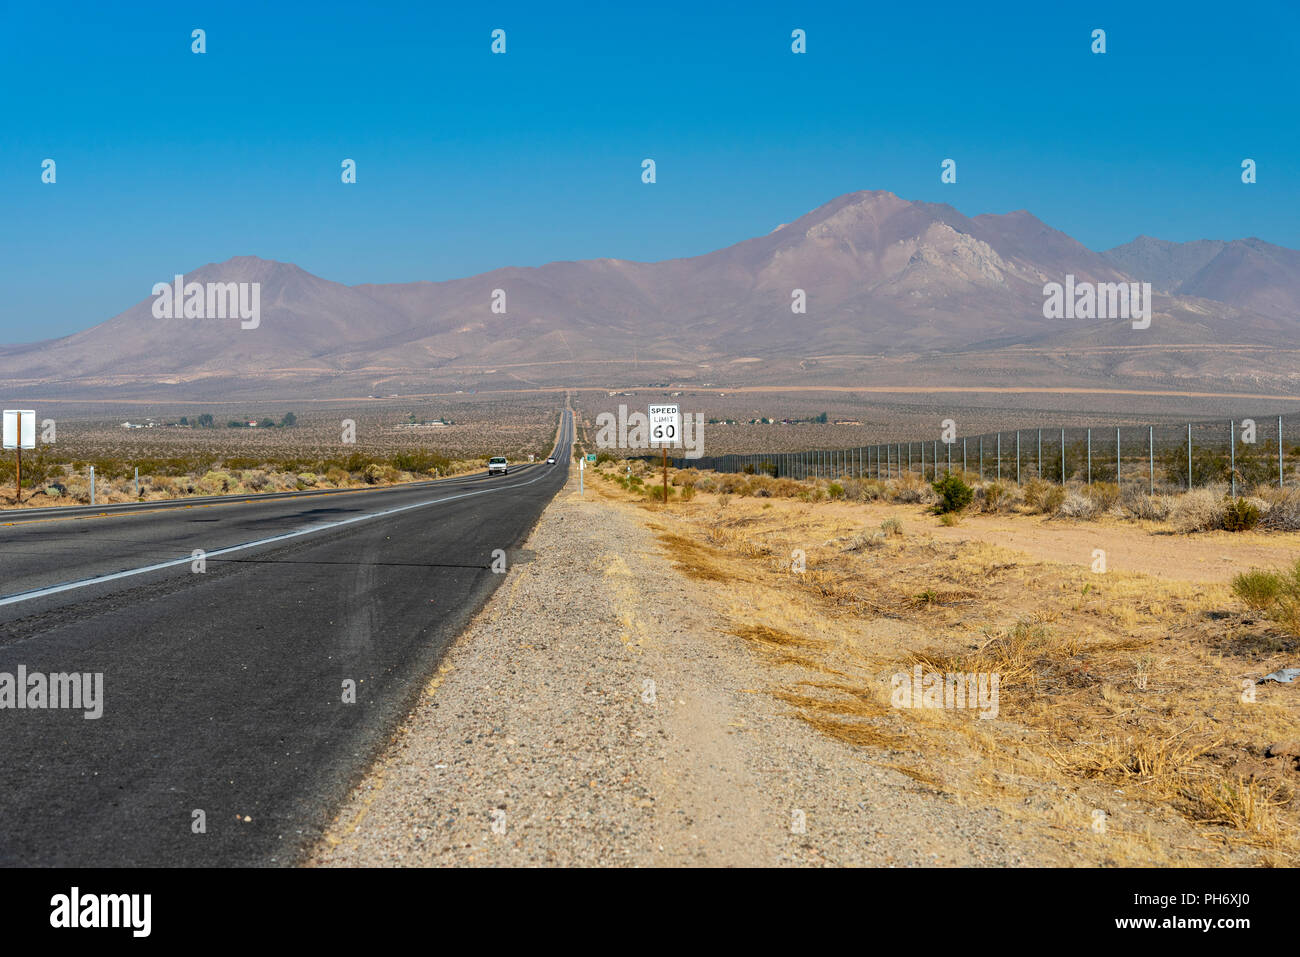 Desert highway with speed limit sign leading towards tall barren mountains under a bight blue sky. Gravel roadside and dead vegetation. Stock Photo